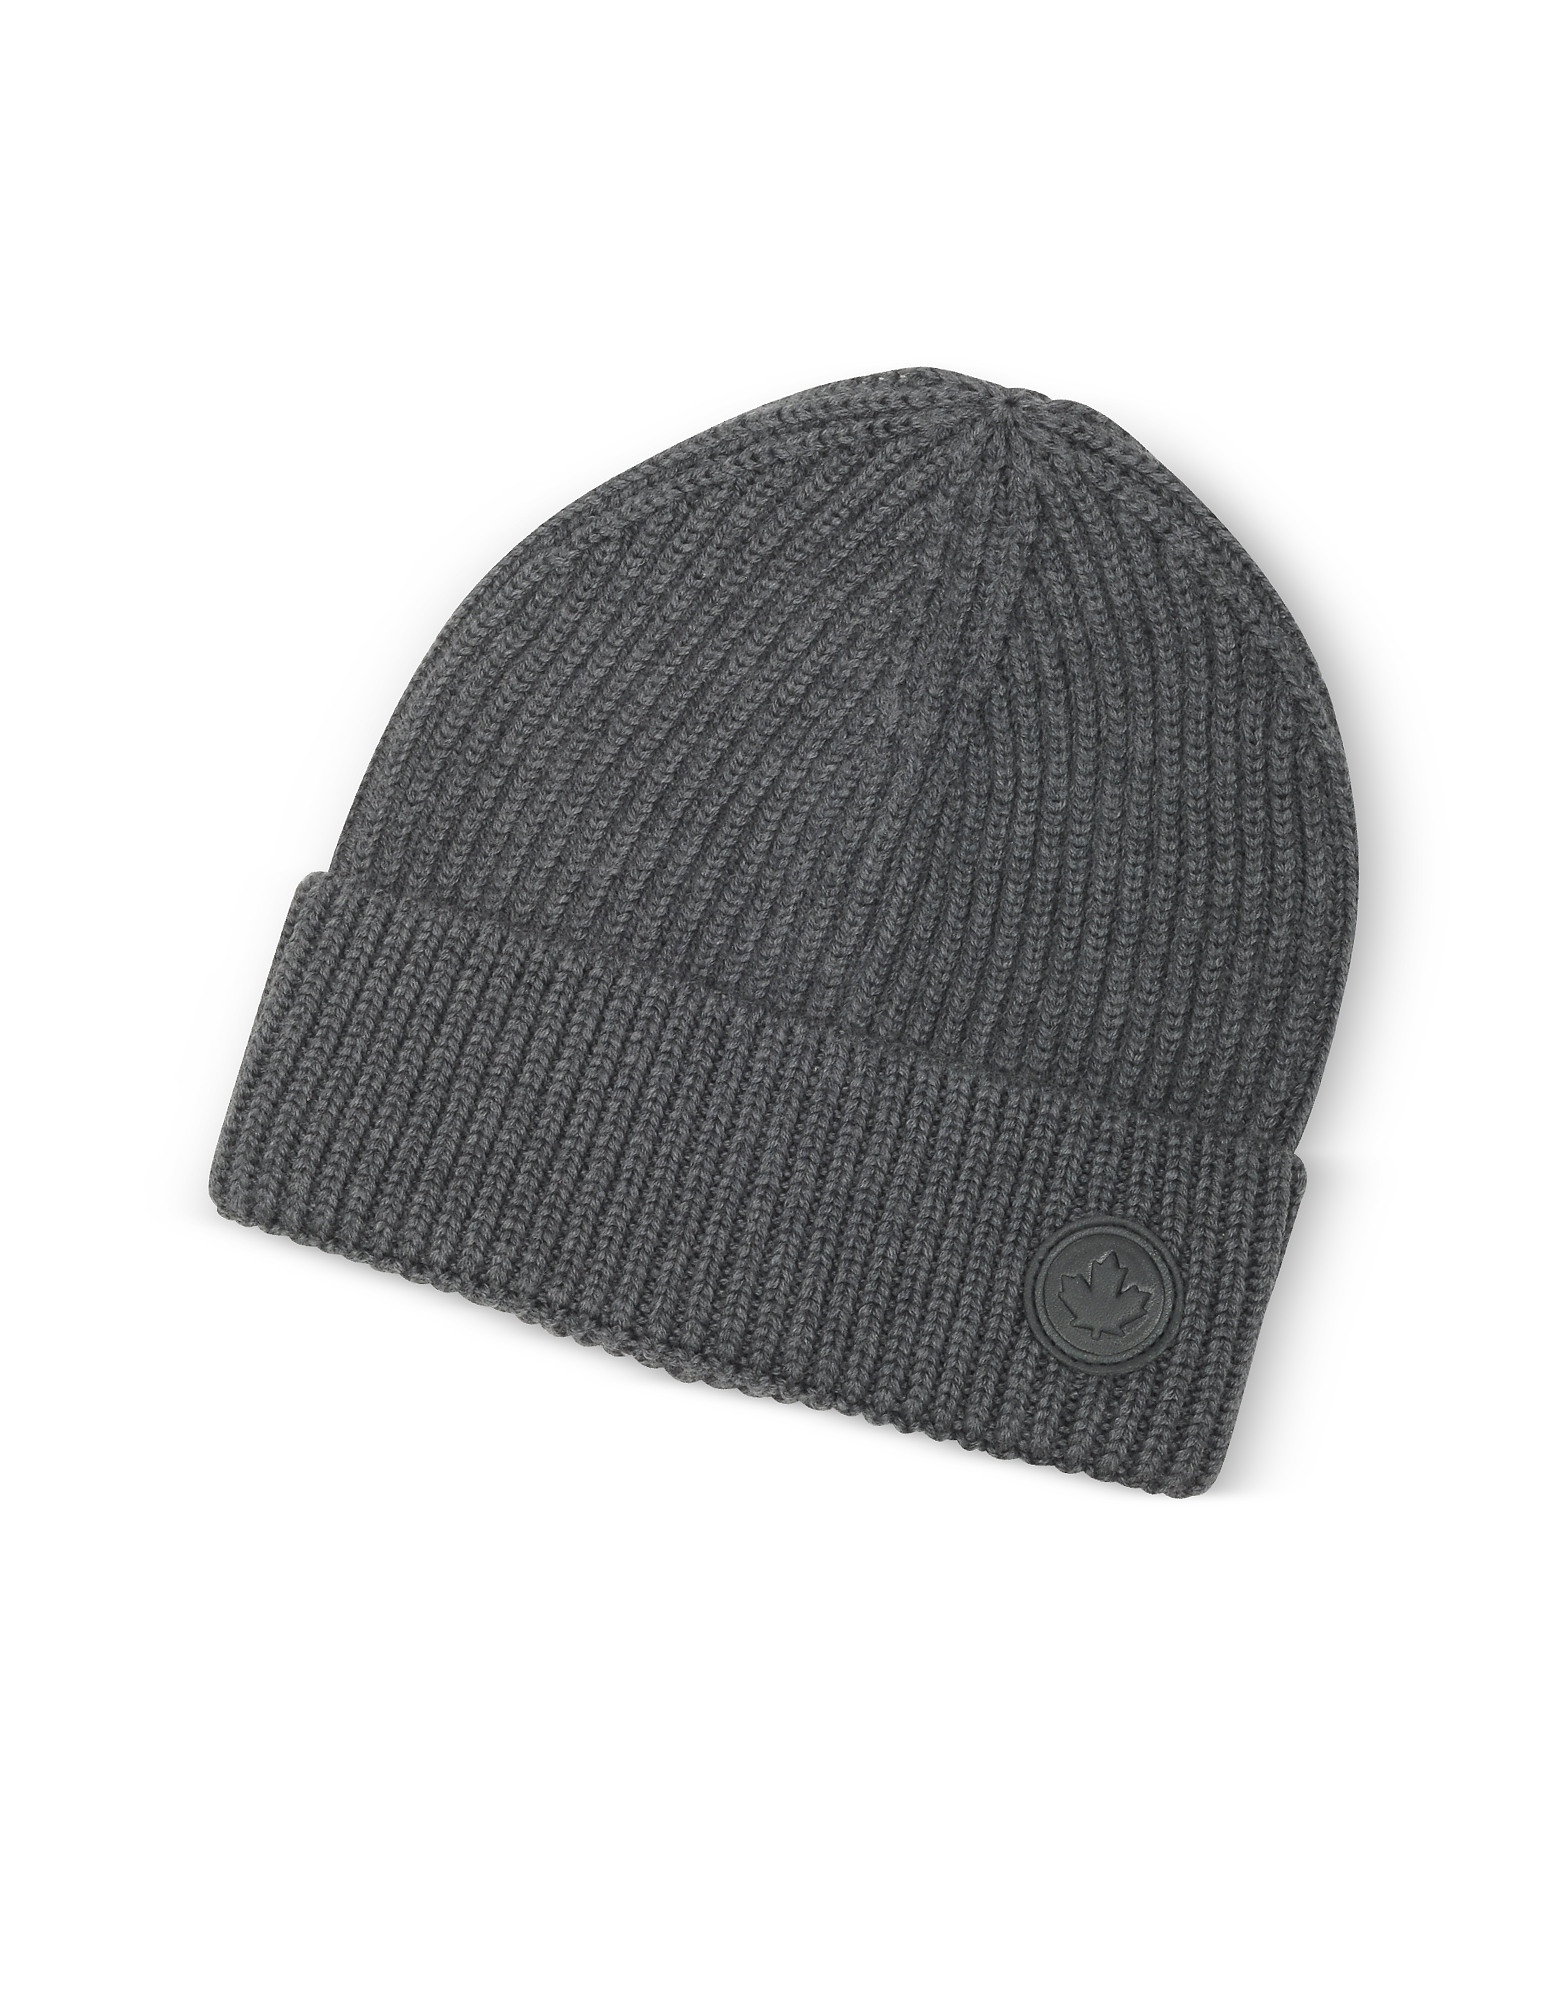 DSquared2 Men's Hats, Solid Wool Knit Hat